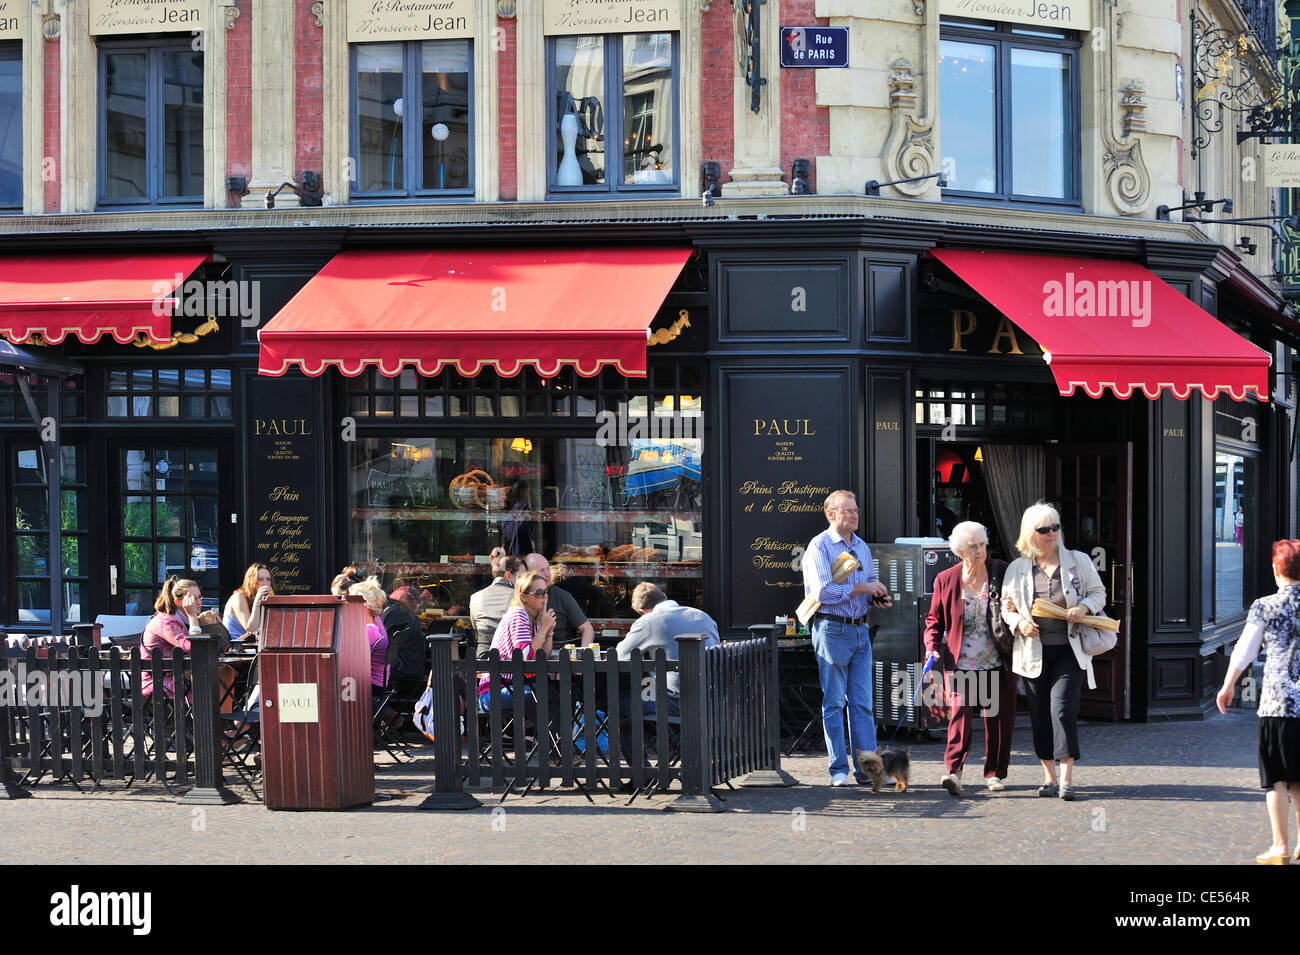 Tourists eating pastries on terrace at the famous bakery and pastry shop Patisserie Paul in Lille, France - Stock Image